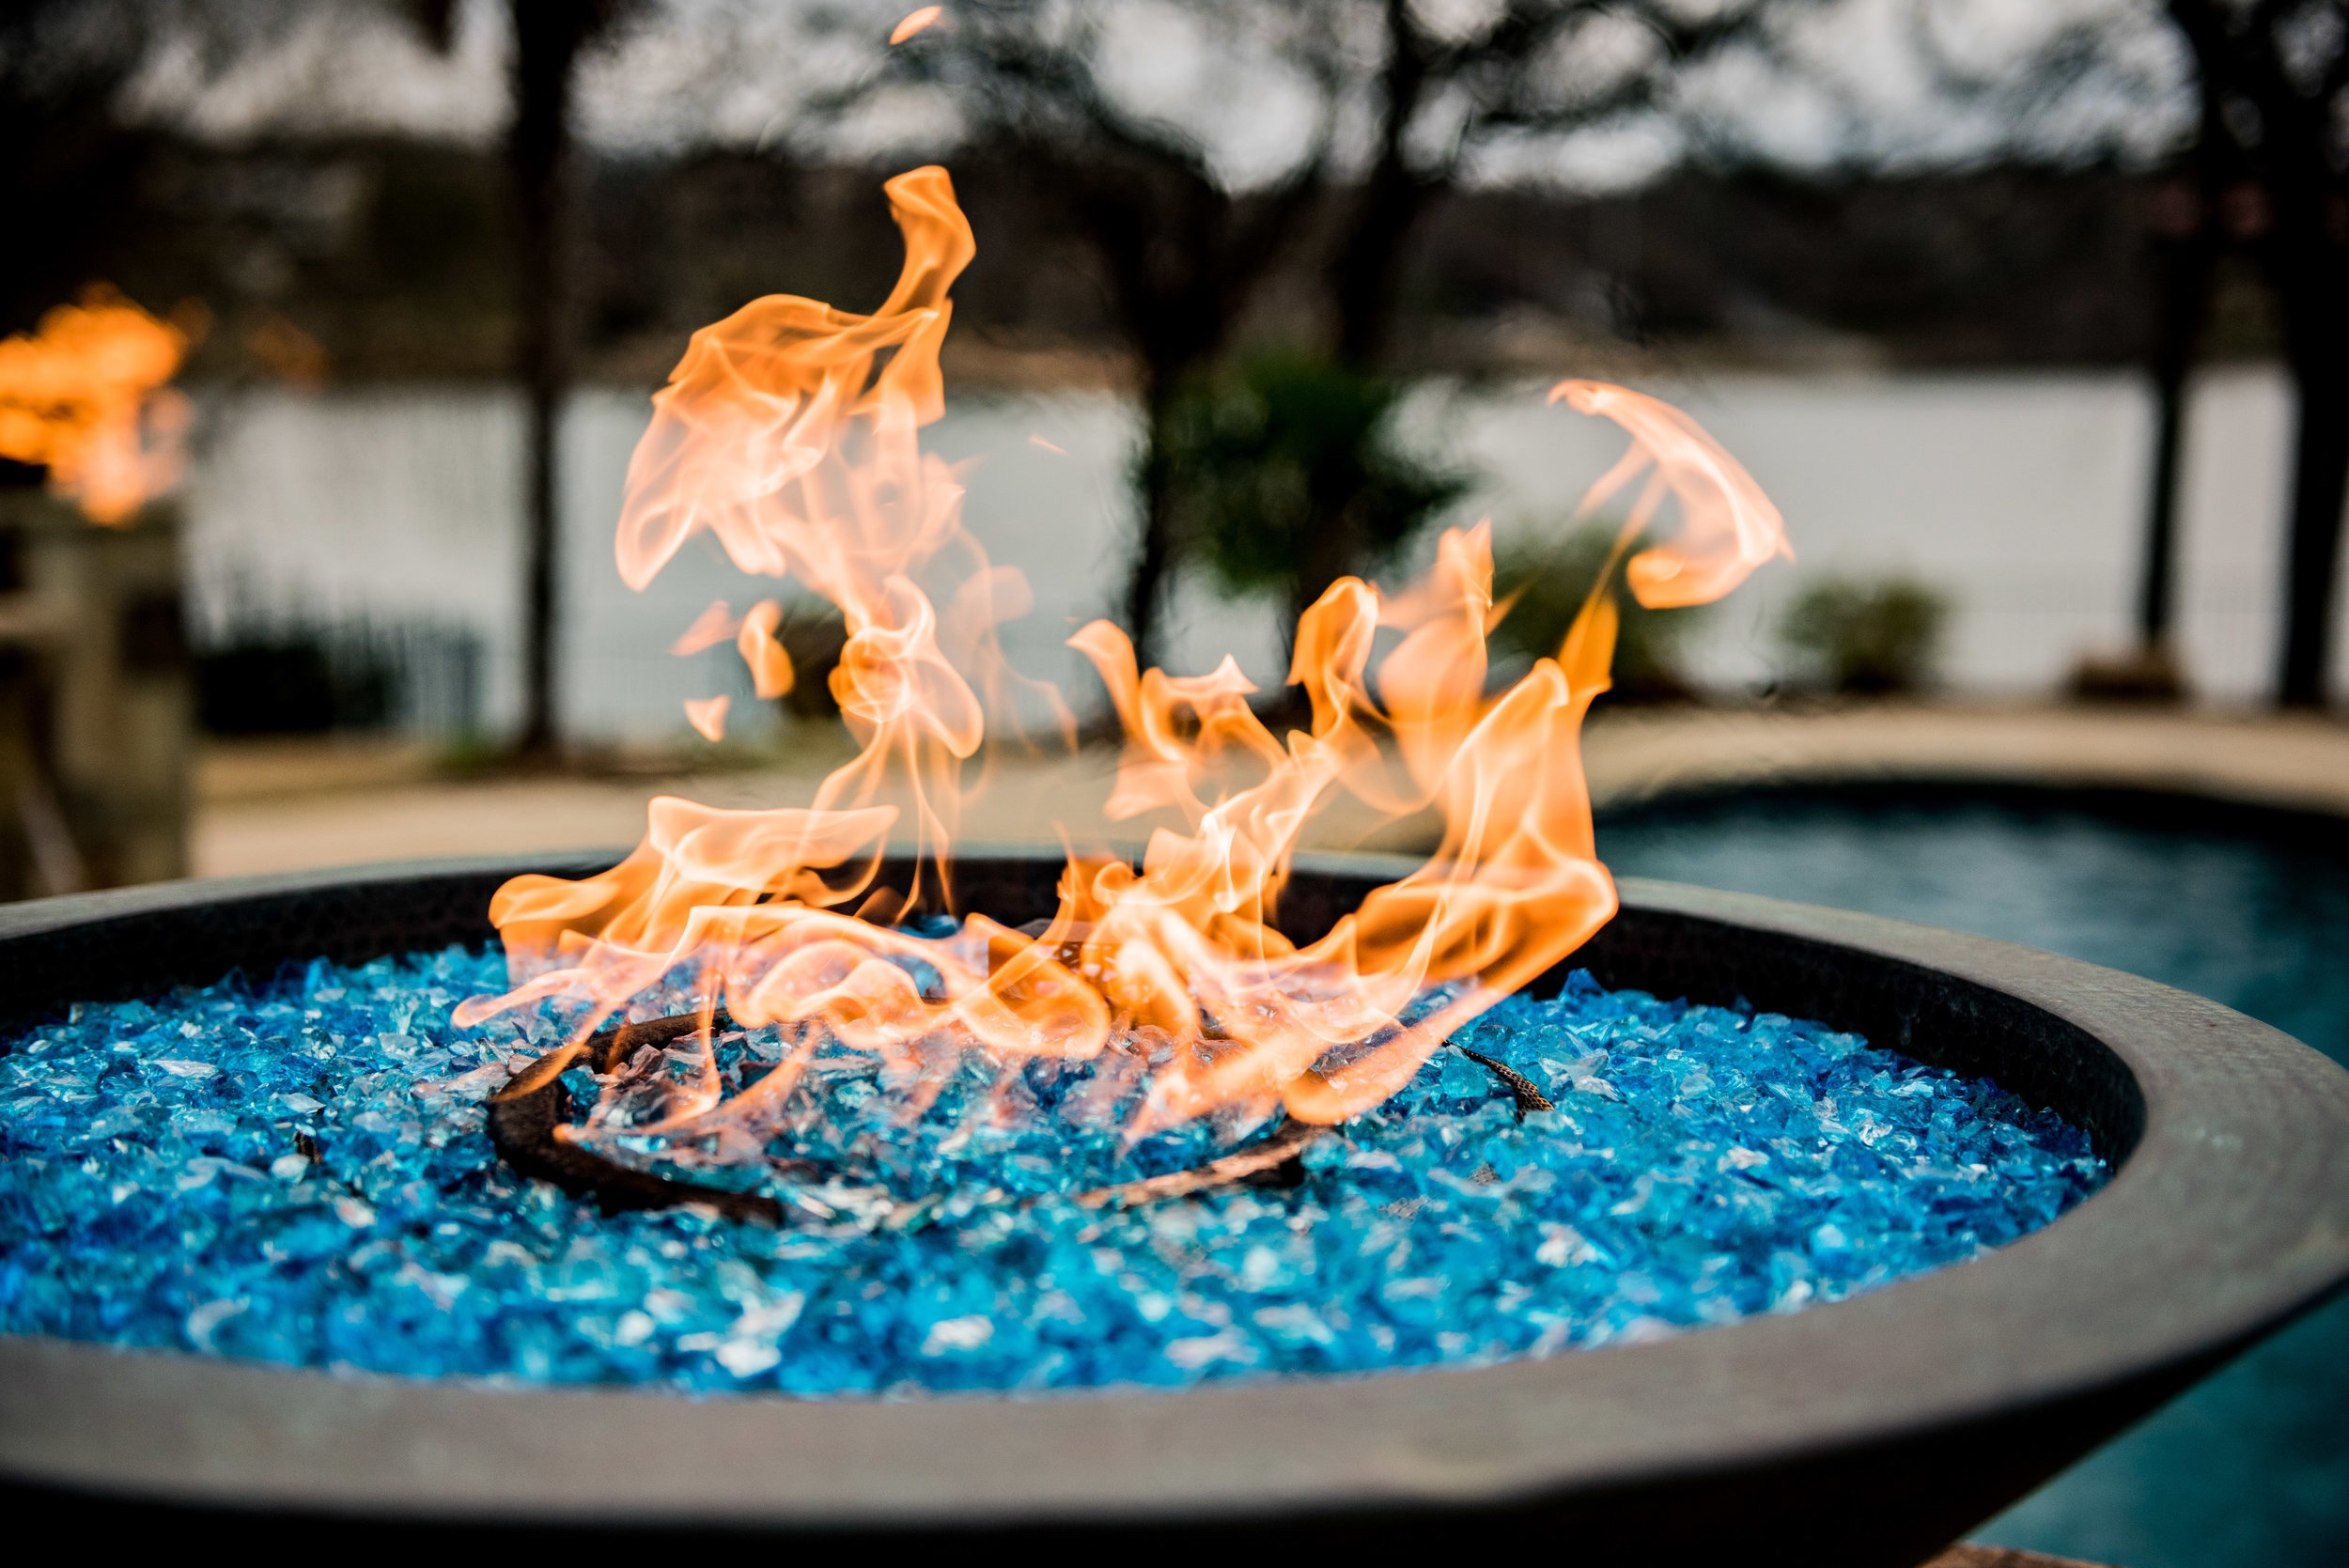 BMR pool and patio fire bowl.jpg